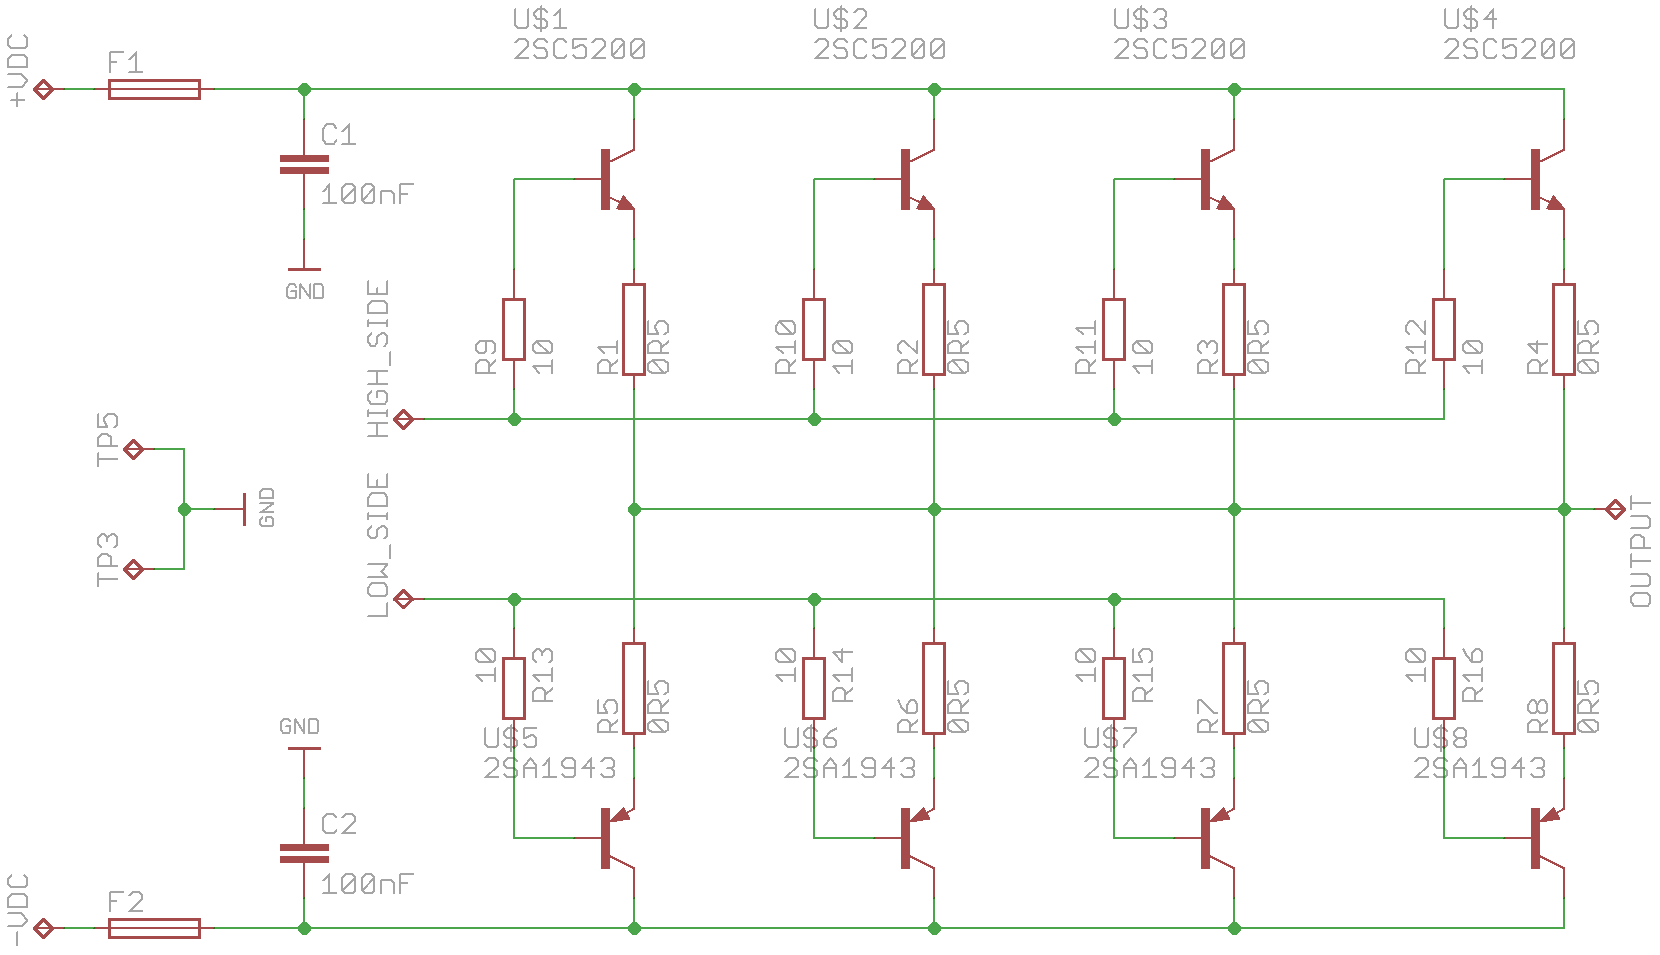 hight resolution of out pwr st sch 2sc5200 2sa1943 output power stage out pwr st sch amplifiers 2sc5200 circuit diagram